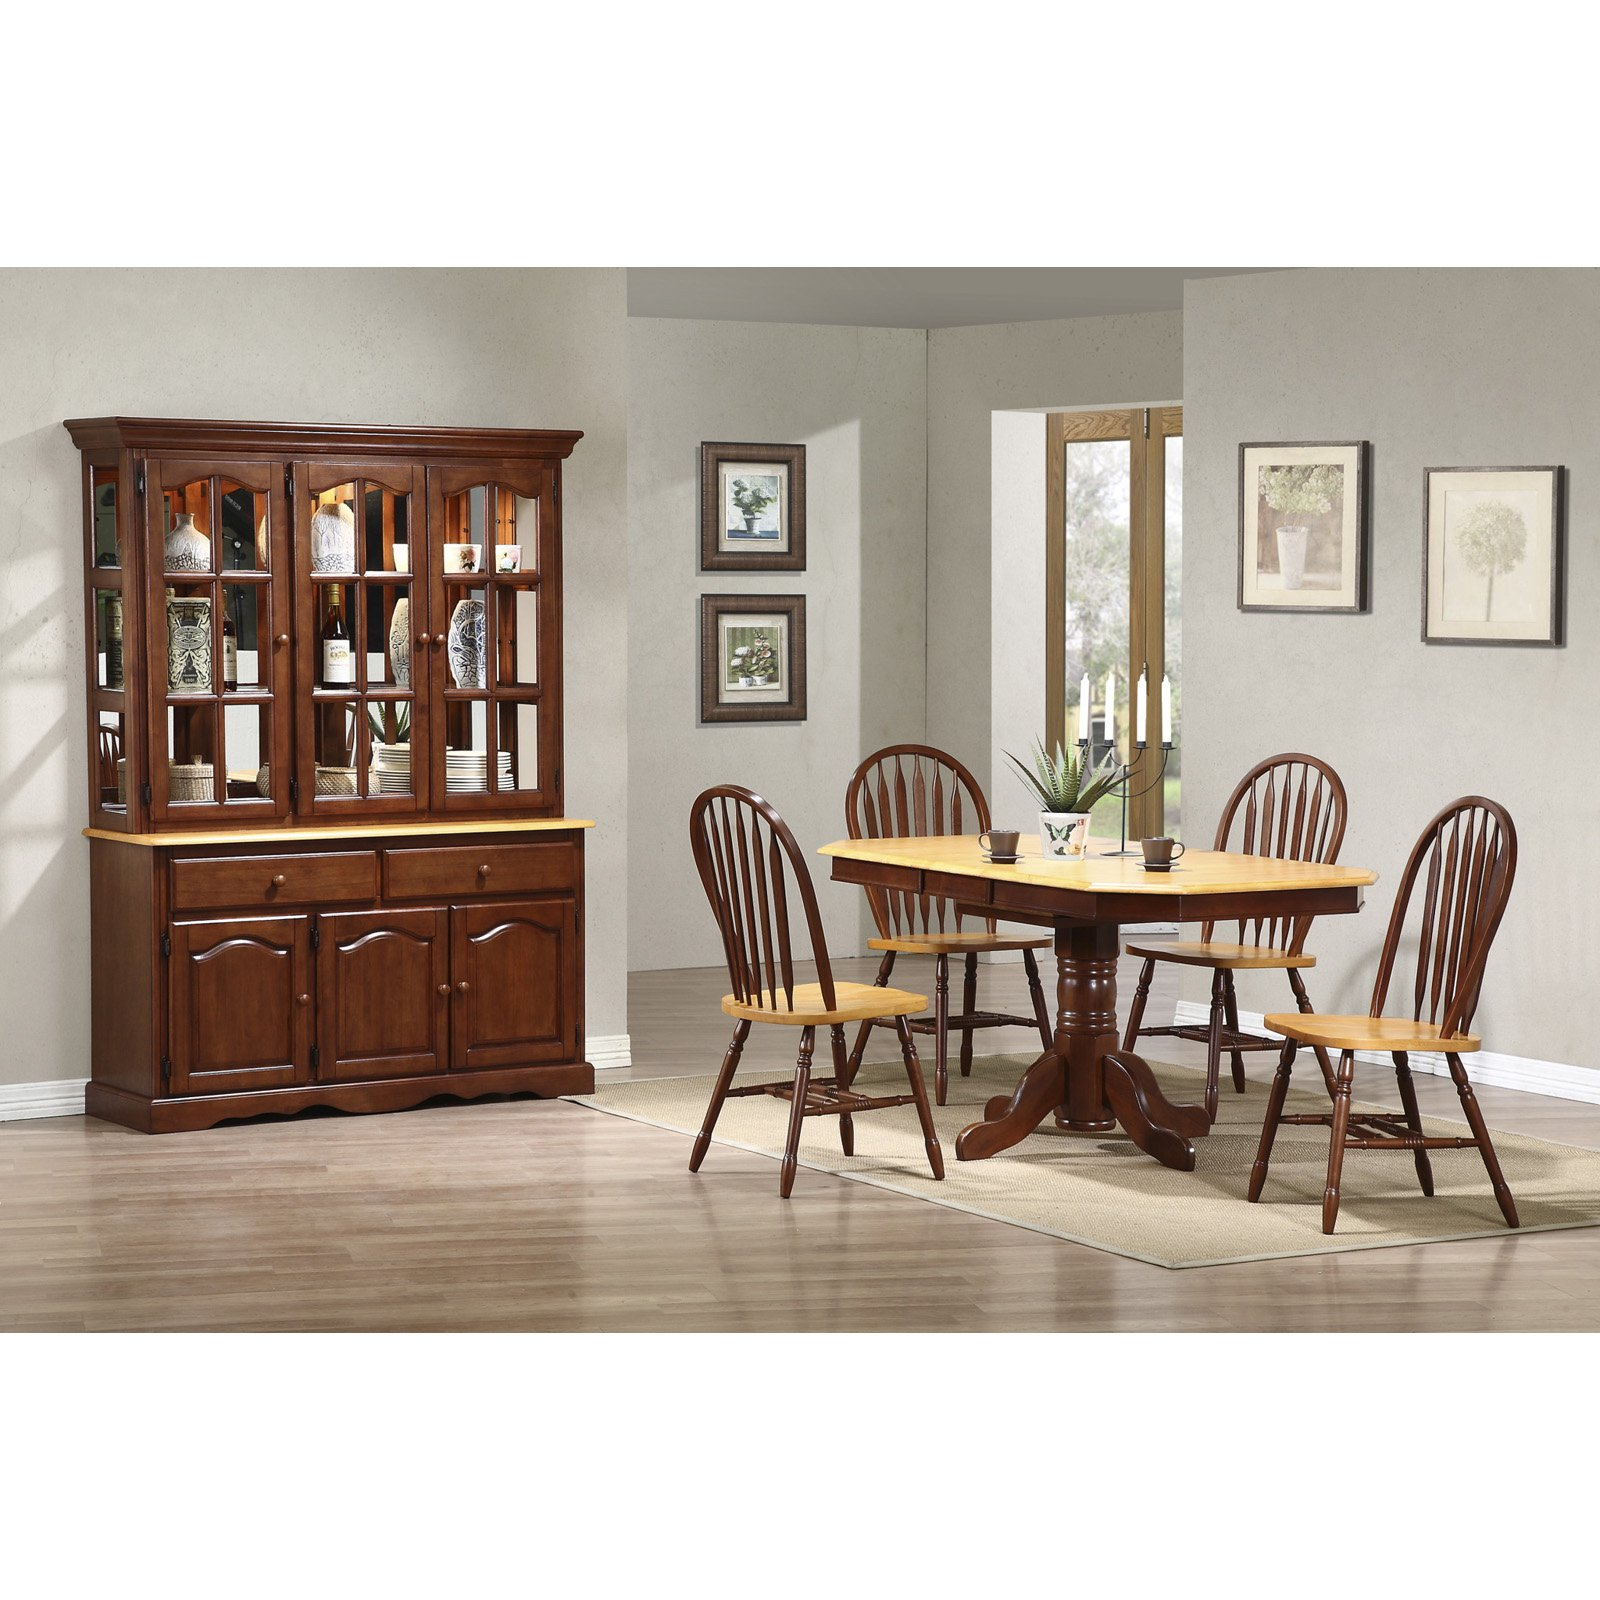 Sunset Trading 6-Piece Pedestal Extension Dining Room Set with China Cabinet by